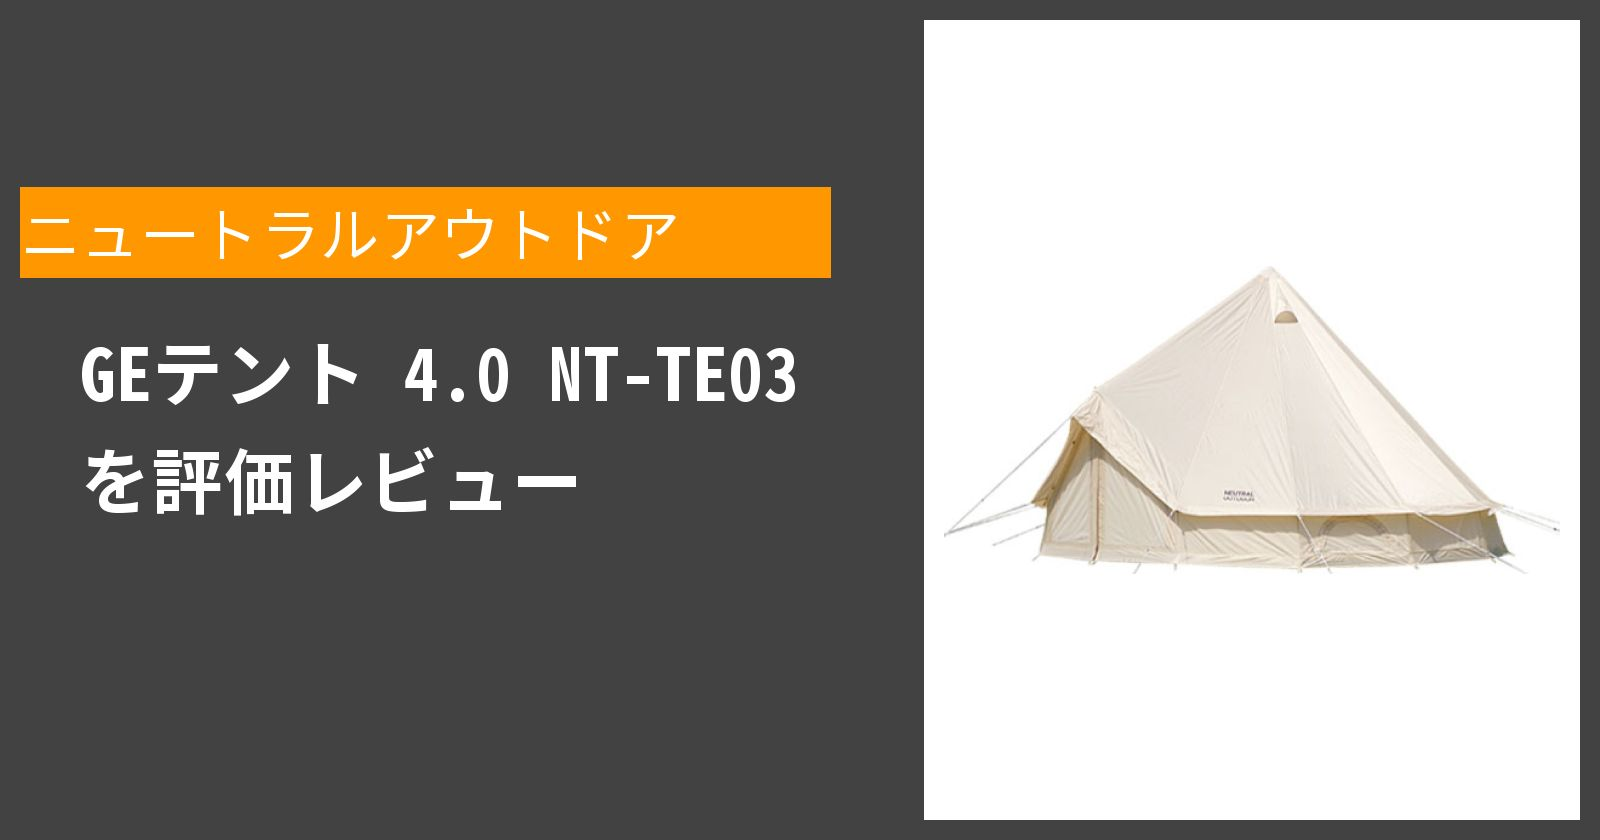 GEテント 4.0 NT-TE03を徹底評価